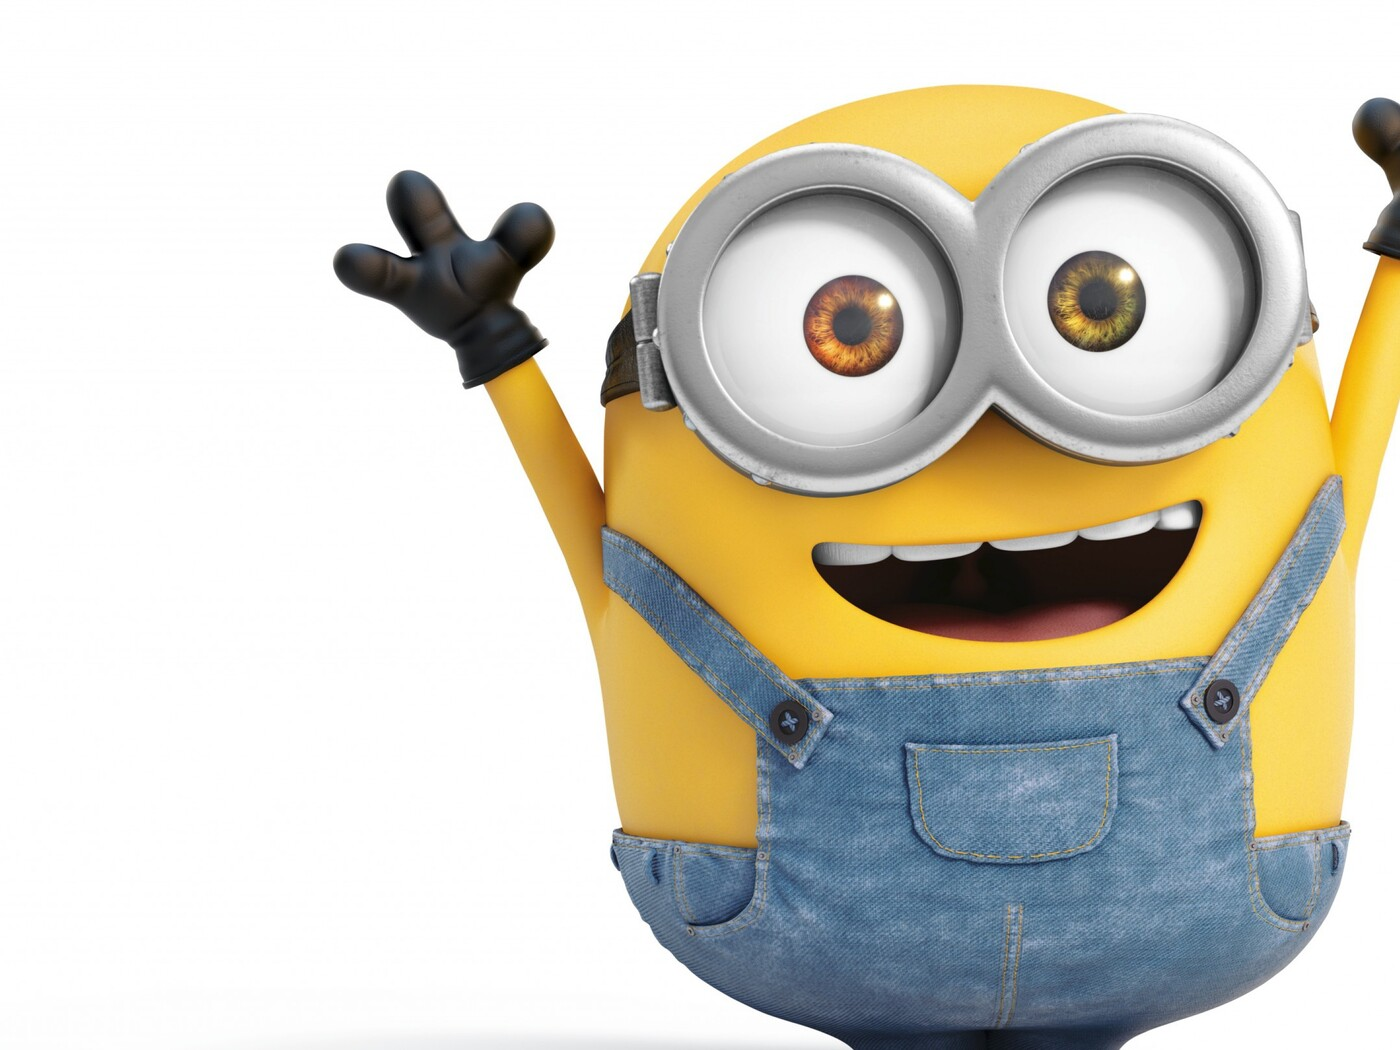 Pictures of all the minions